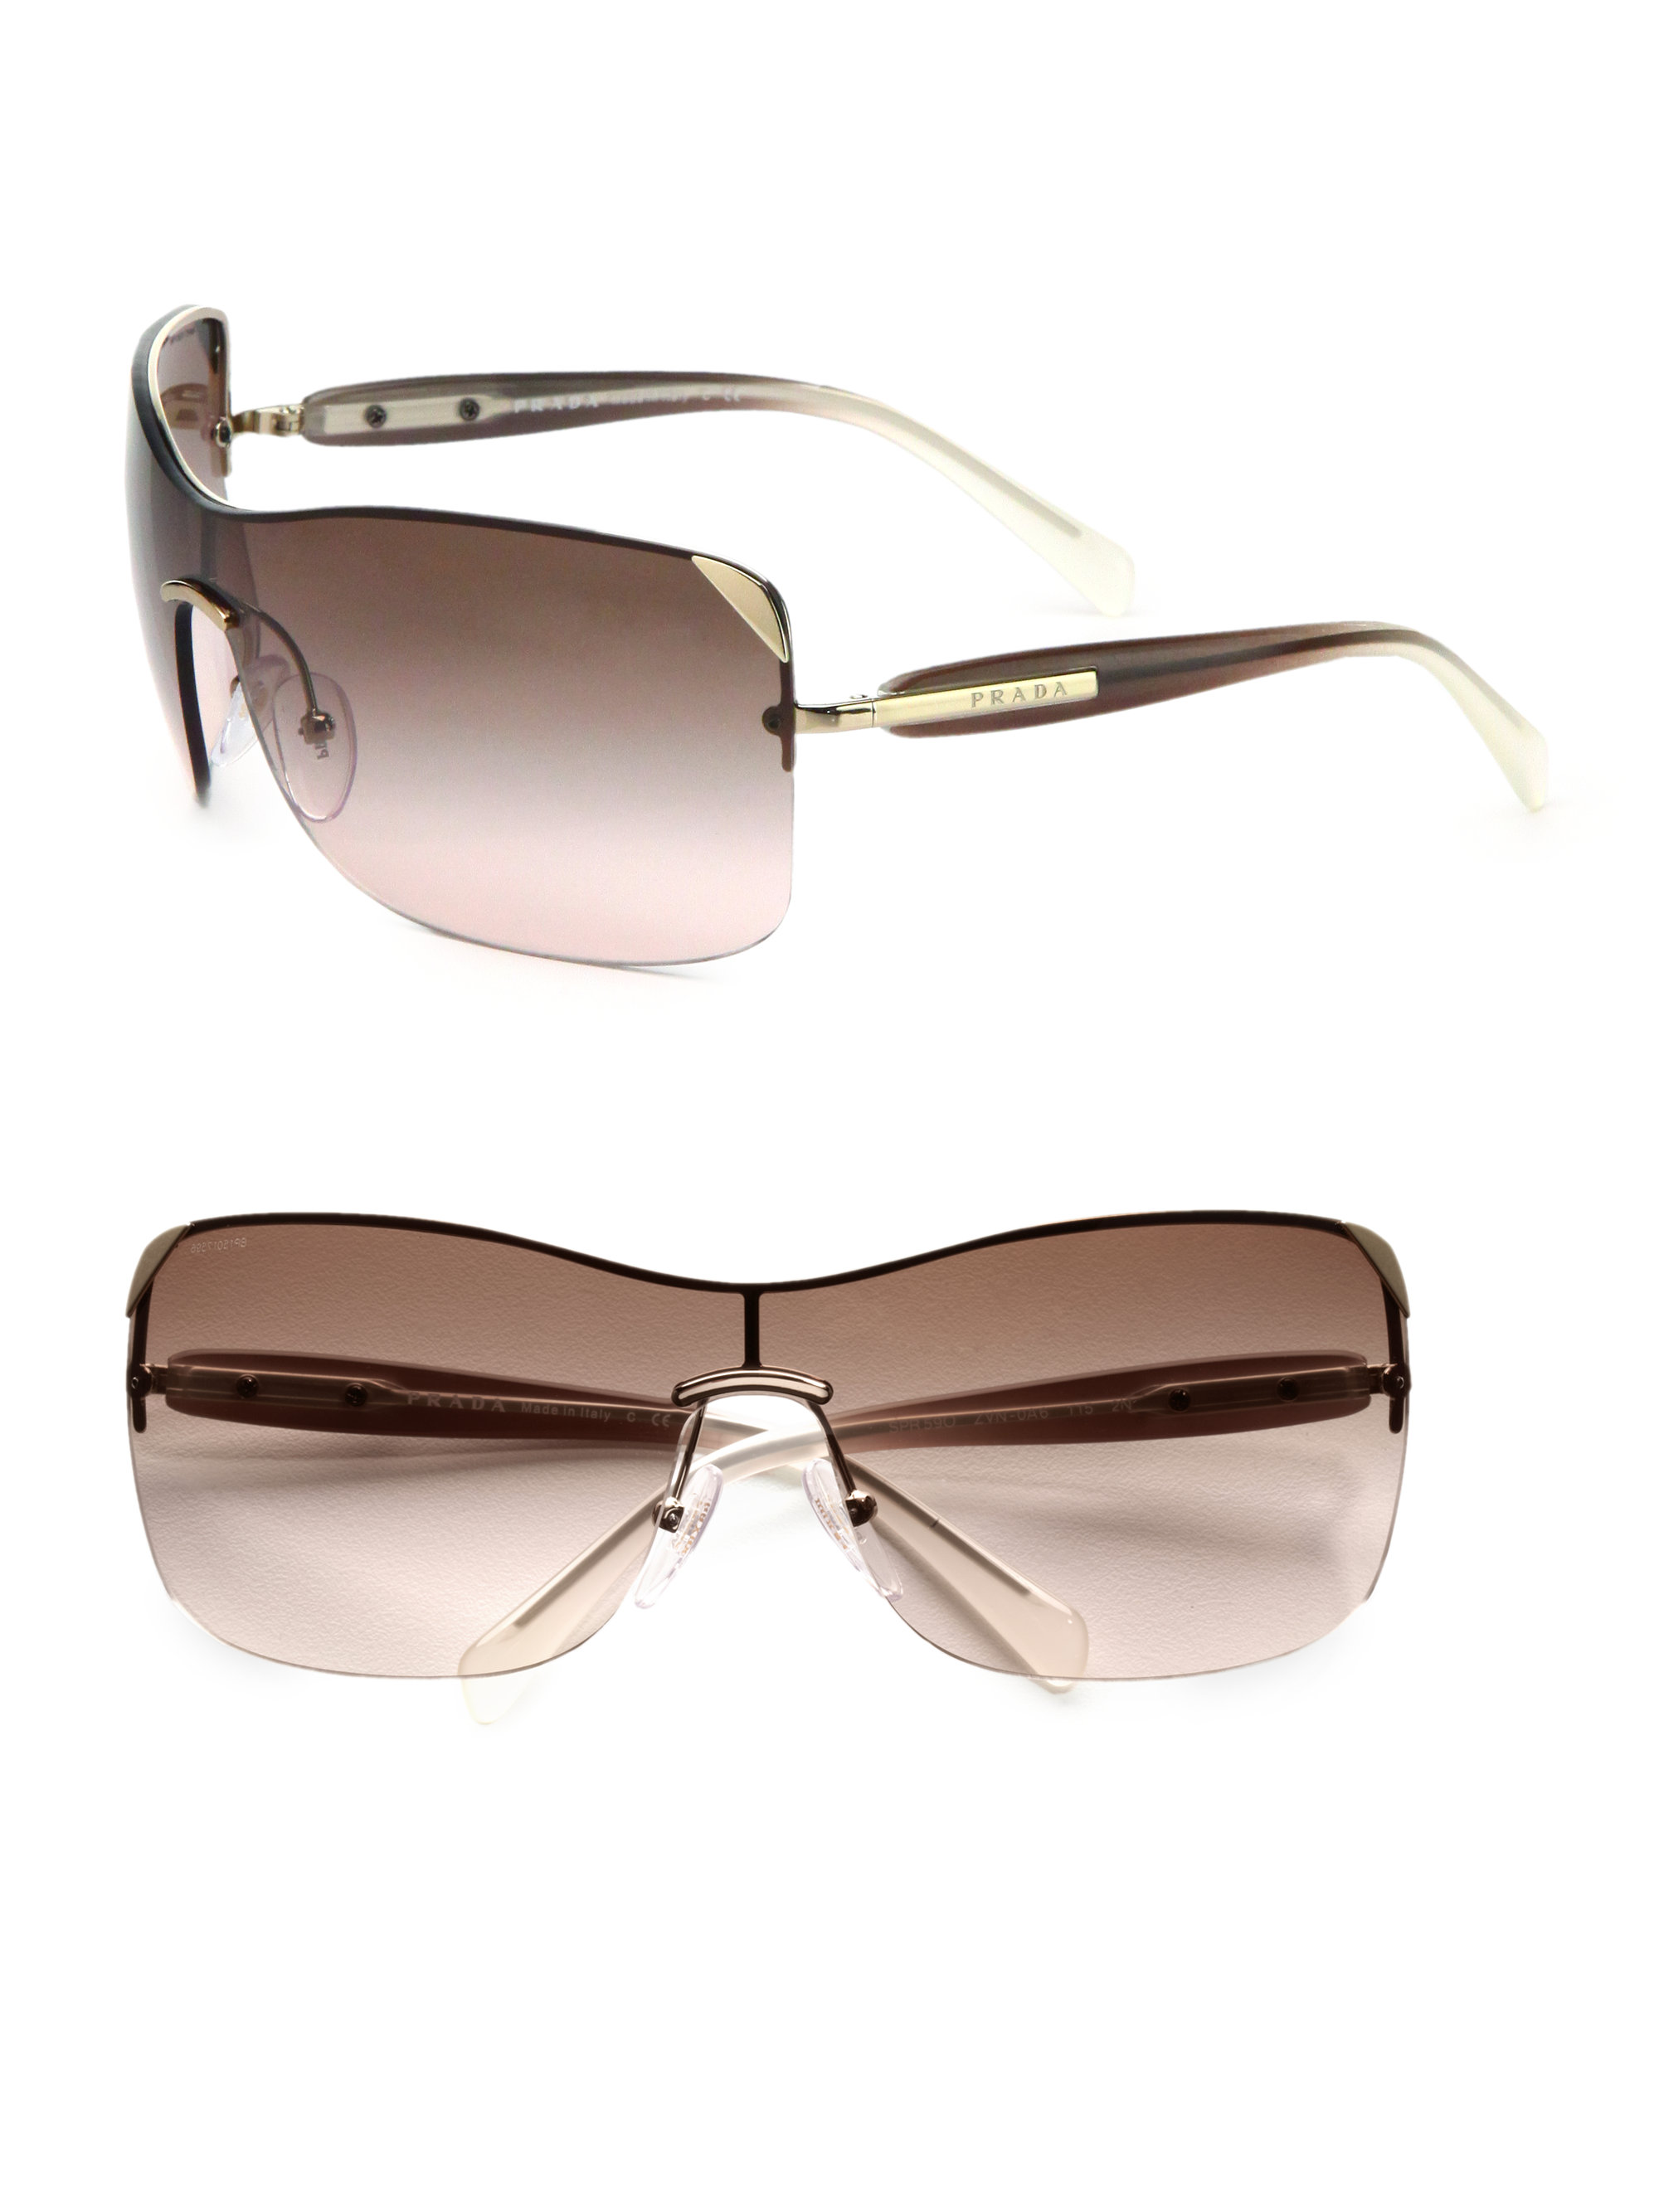 75be551ed2c9 Lyst - Prada Rectangular Rimless Shield Sunglasses in Brown